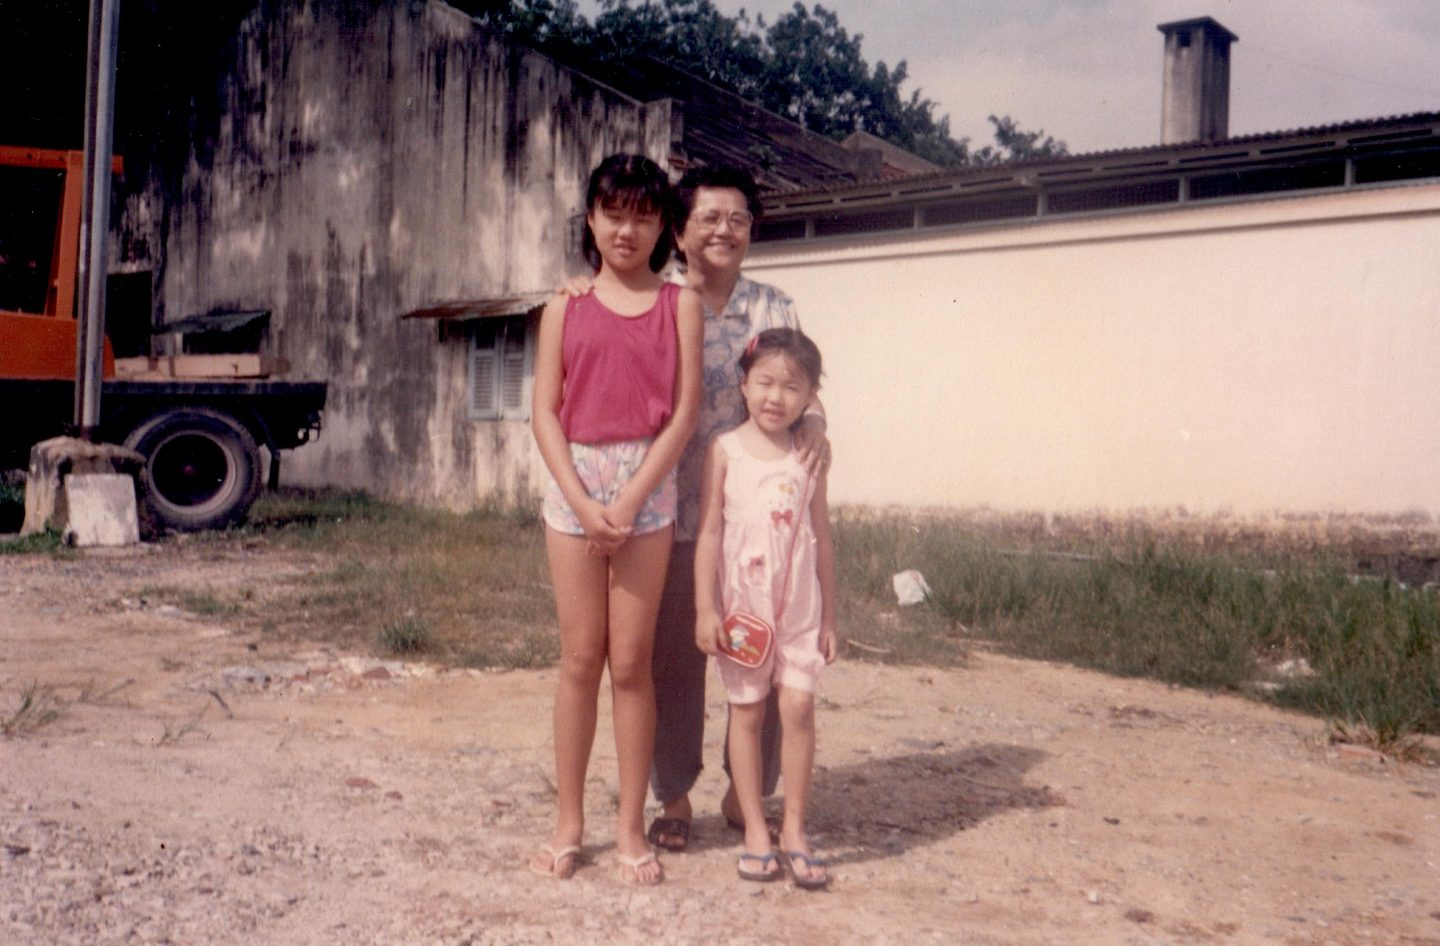 Arielle, 5, with her grandma and elder sister near their house in Changi.